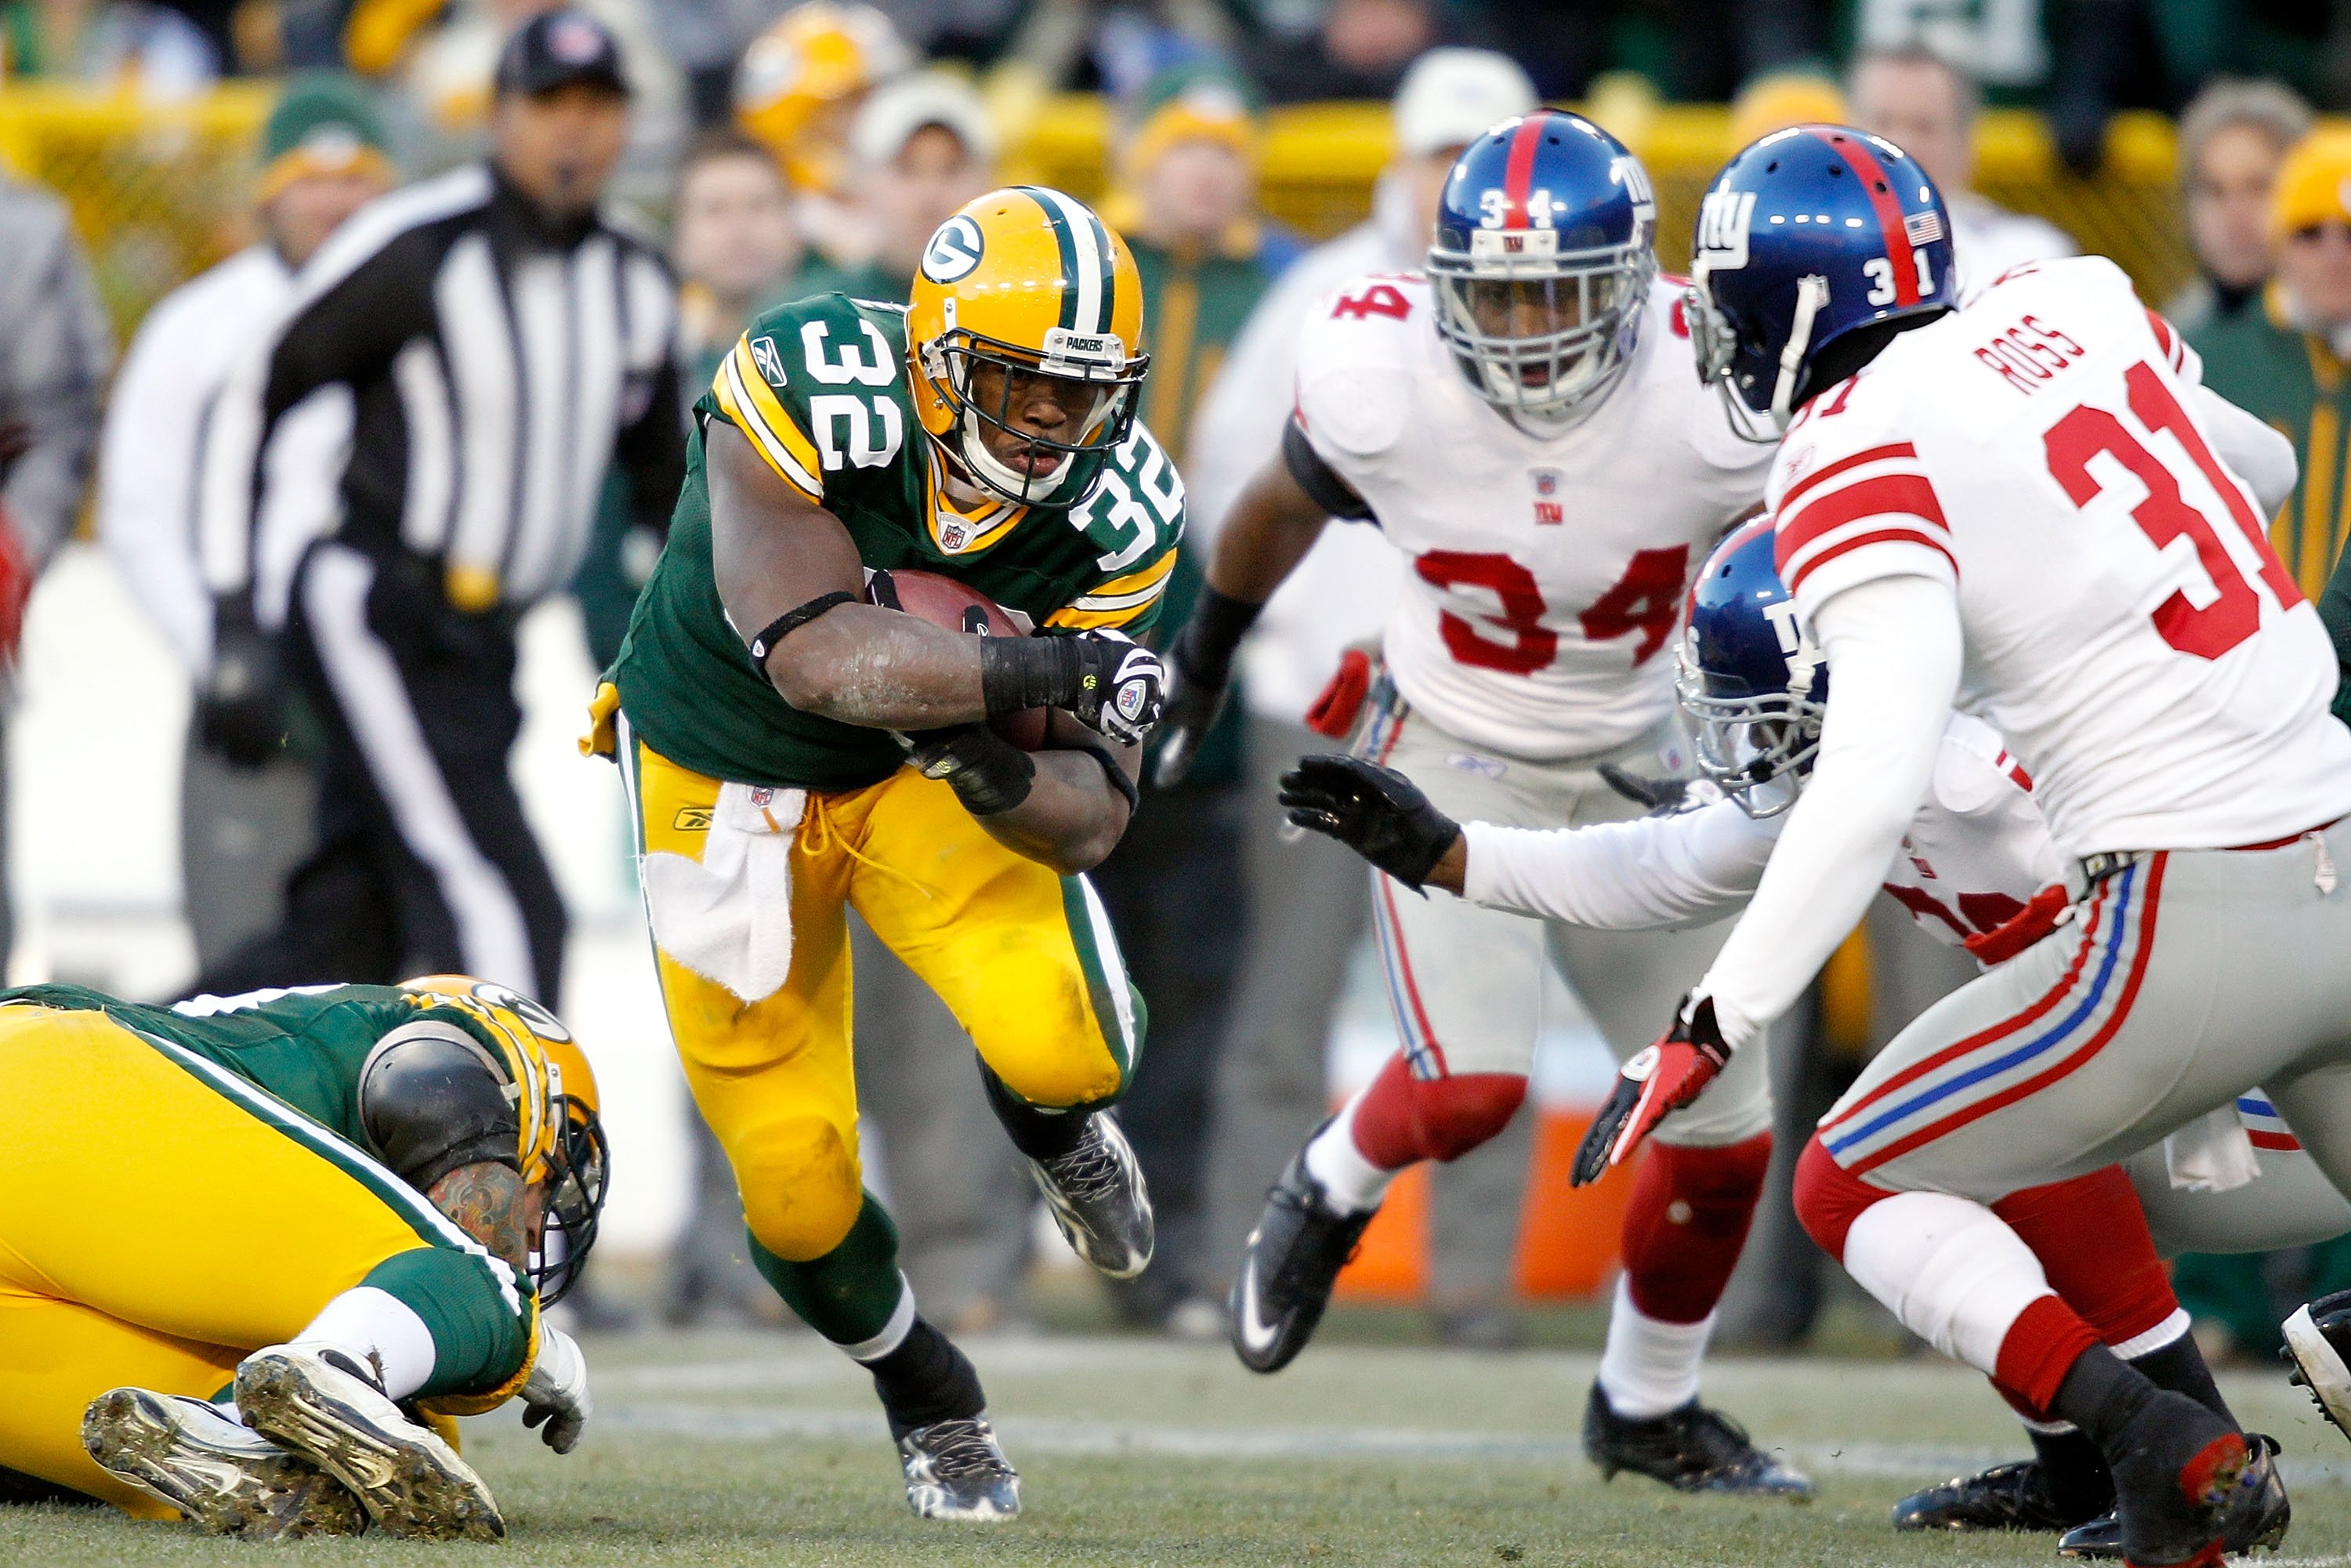 GREEN BAY, WI - DECEMBER 26: Brandon Jackson #32 of the Green Bay Packers carries the ball against the New York Giants at Lambeau Field on December 26, 2010 in Green Bay, Wisconsin.  (Photo by Matthew Stockman/Getty Images)